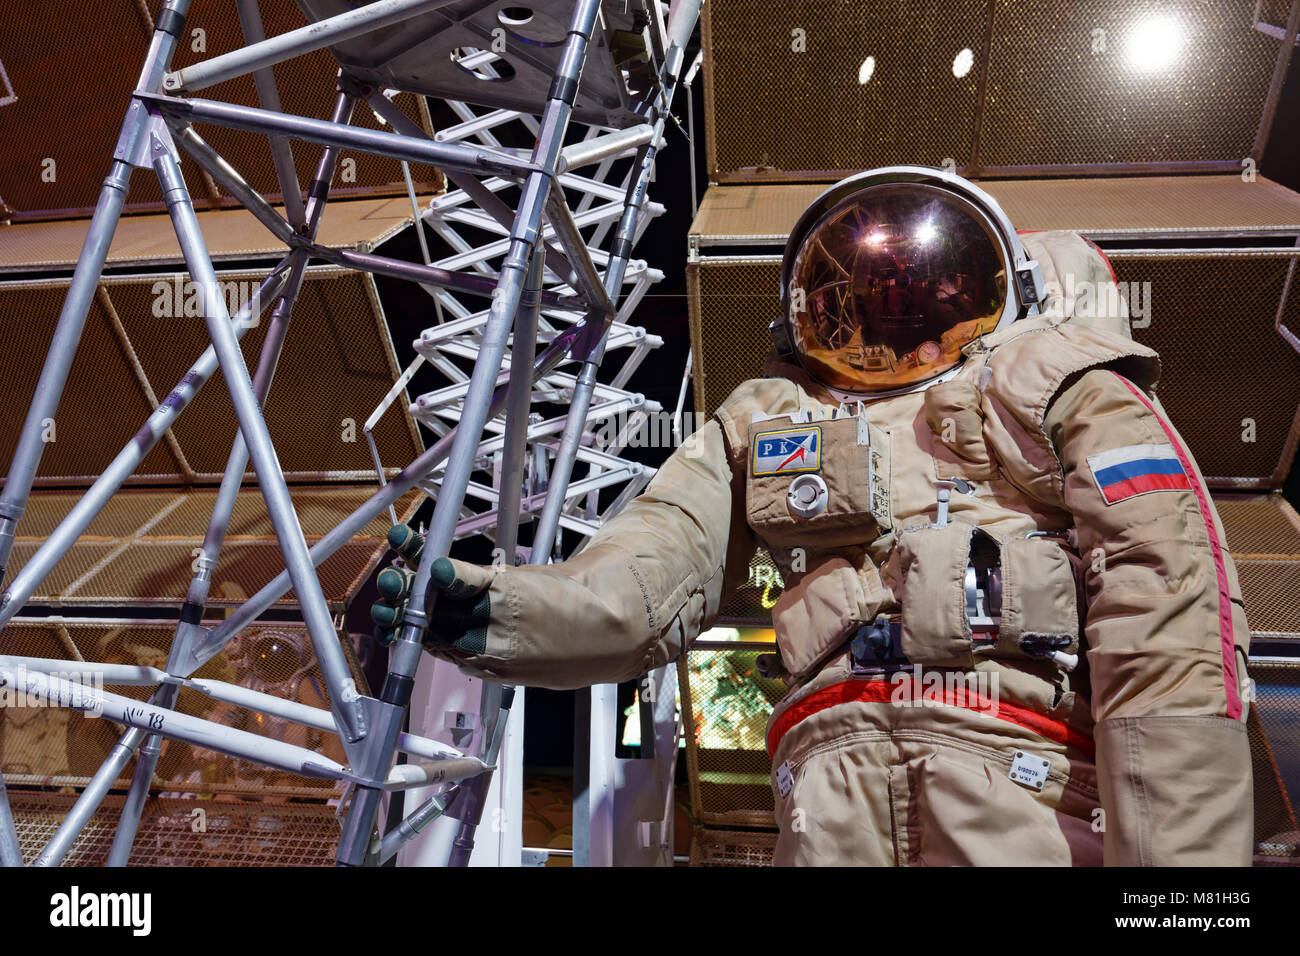 Spacesuit 'Orlan-DMA' for spacewalks on the exhibition PROCosmos in Saint-Petersburg, Russia - Stock Image